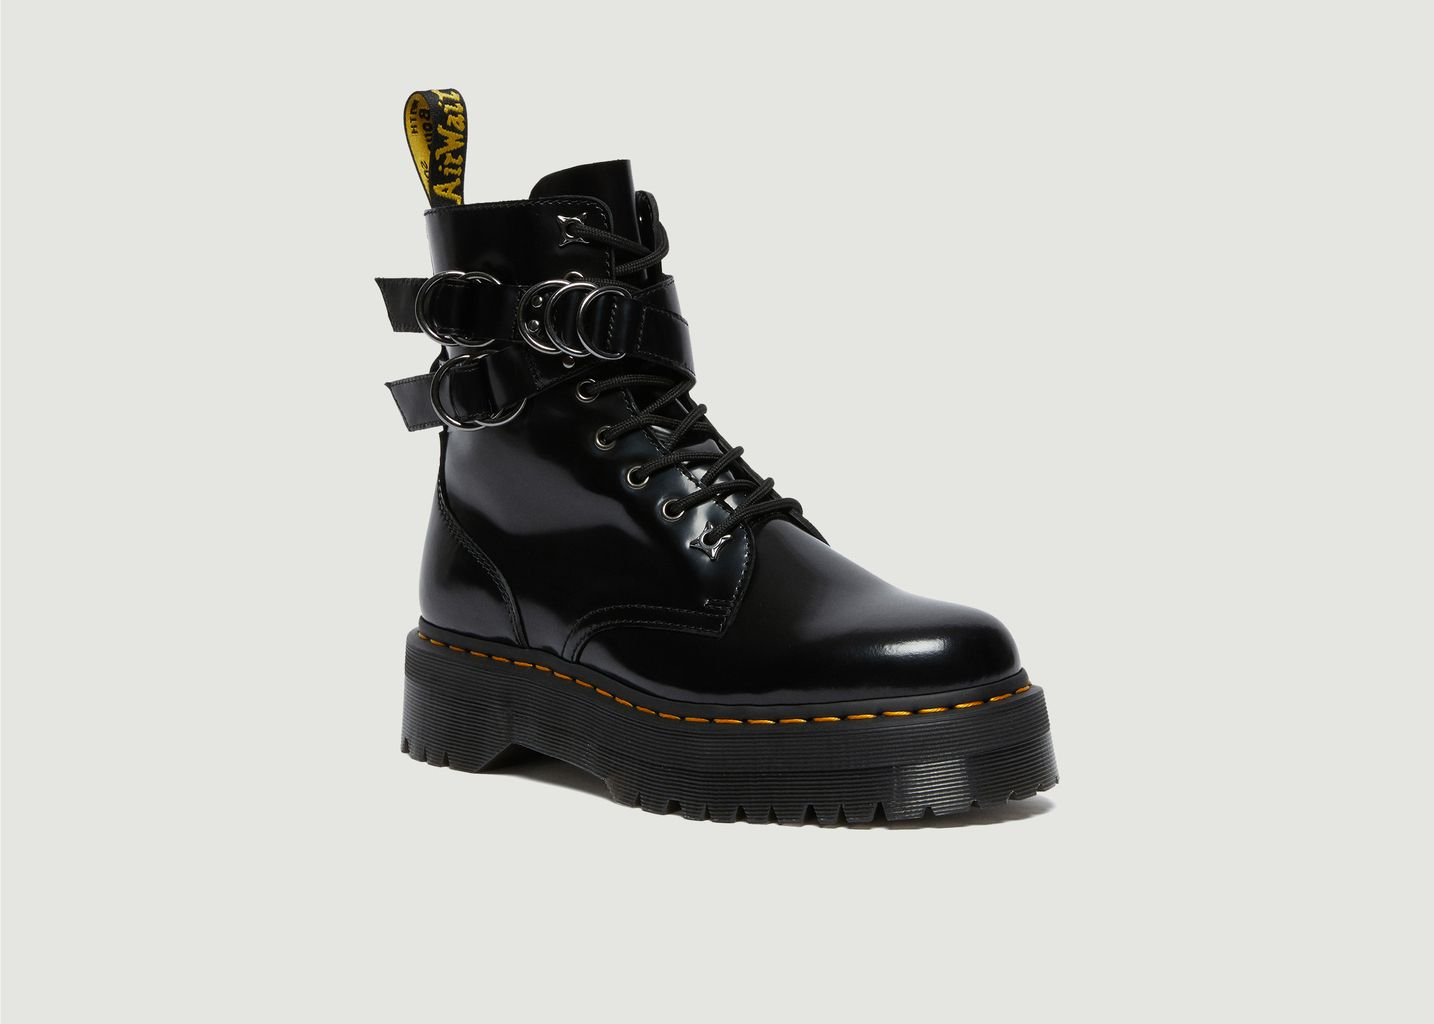 Bottines Jadon Hardware - Dr. Martens